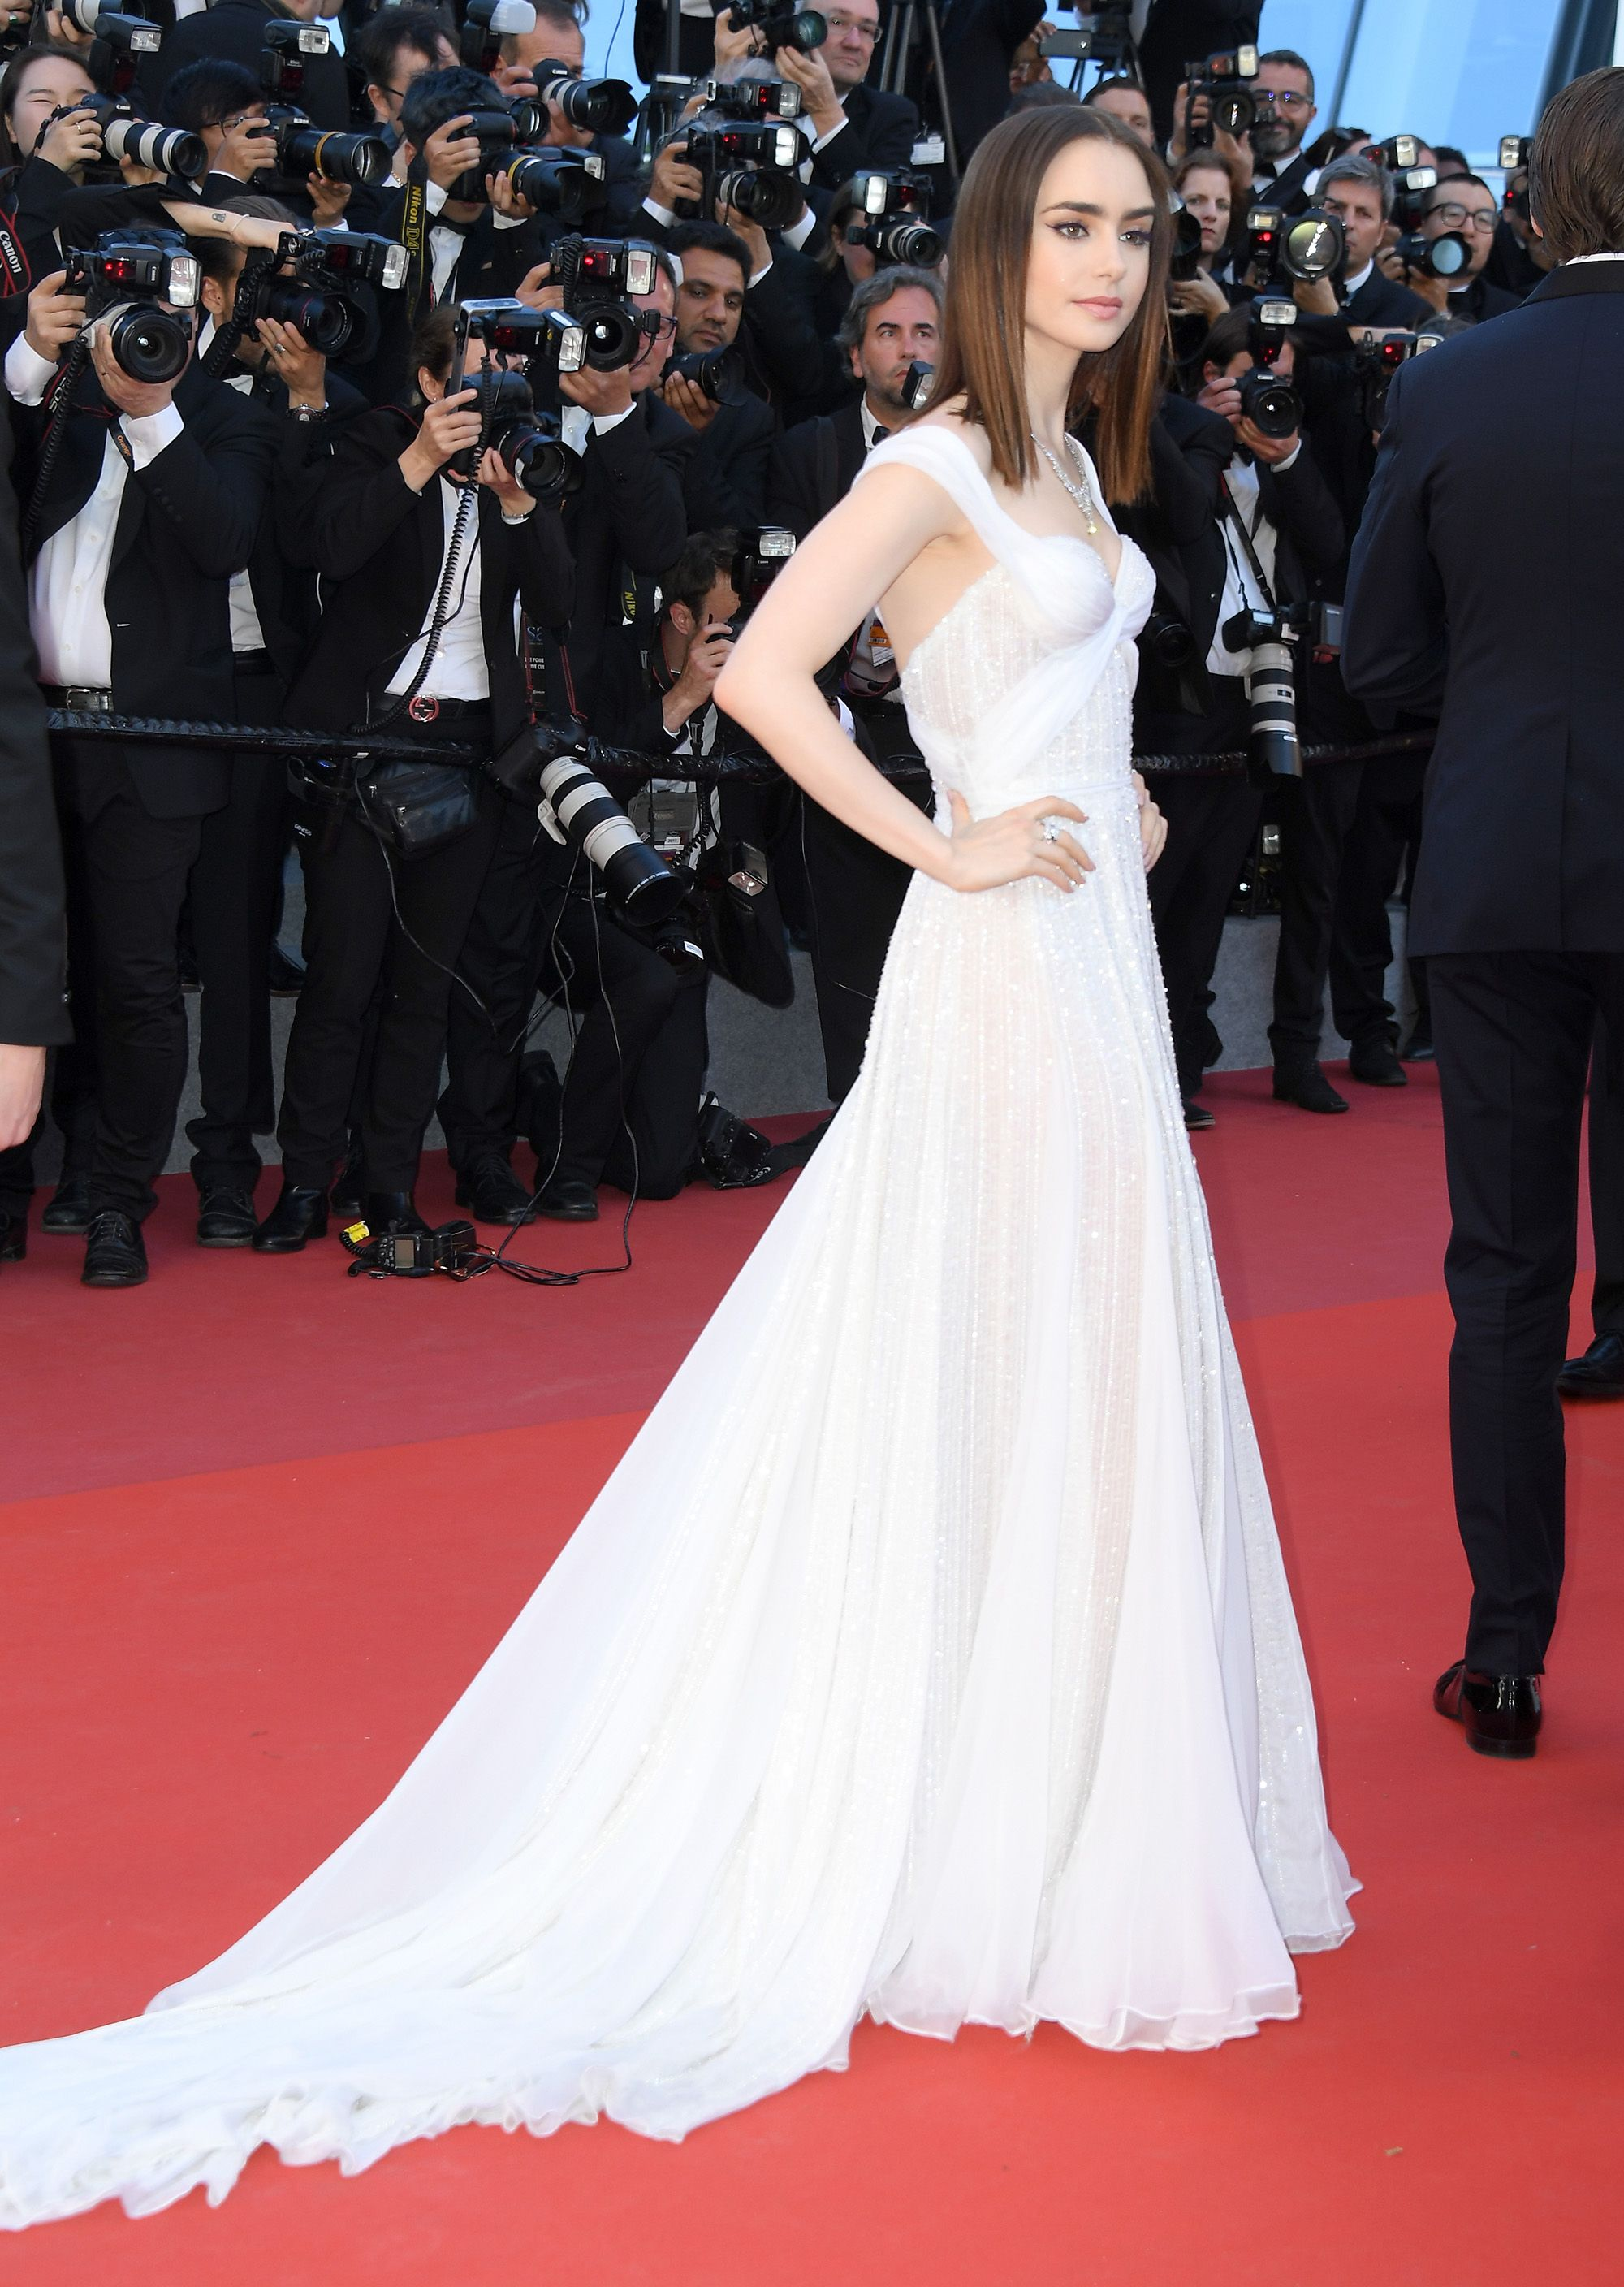 Best Celebrity Red Carpet Dresses From Cannes Film Festival 2017 ...